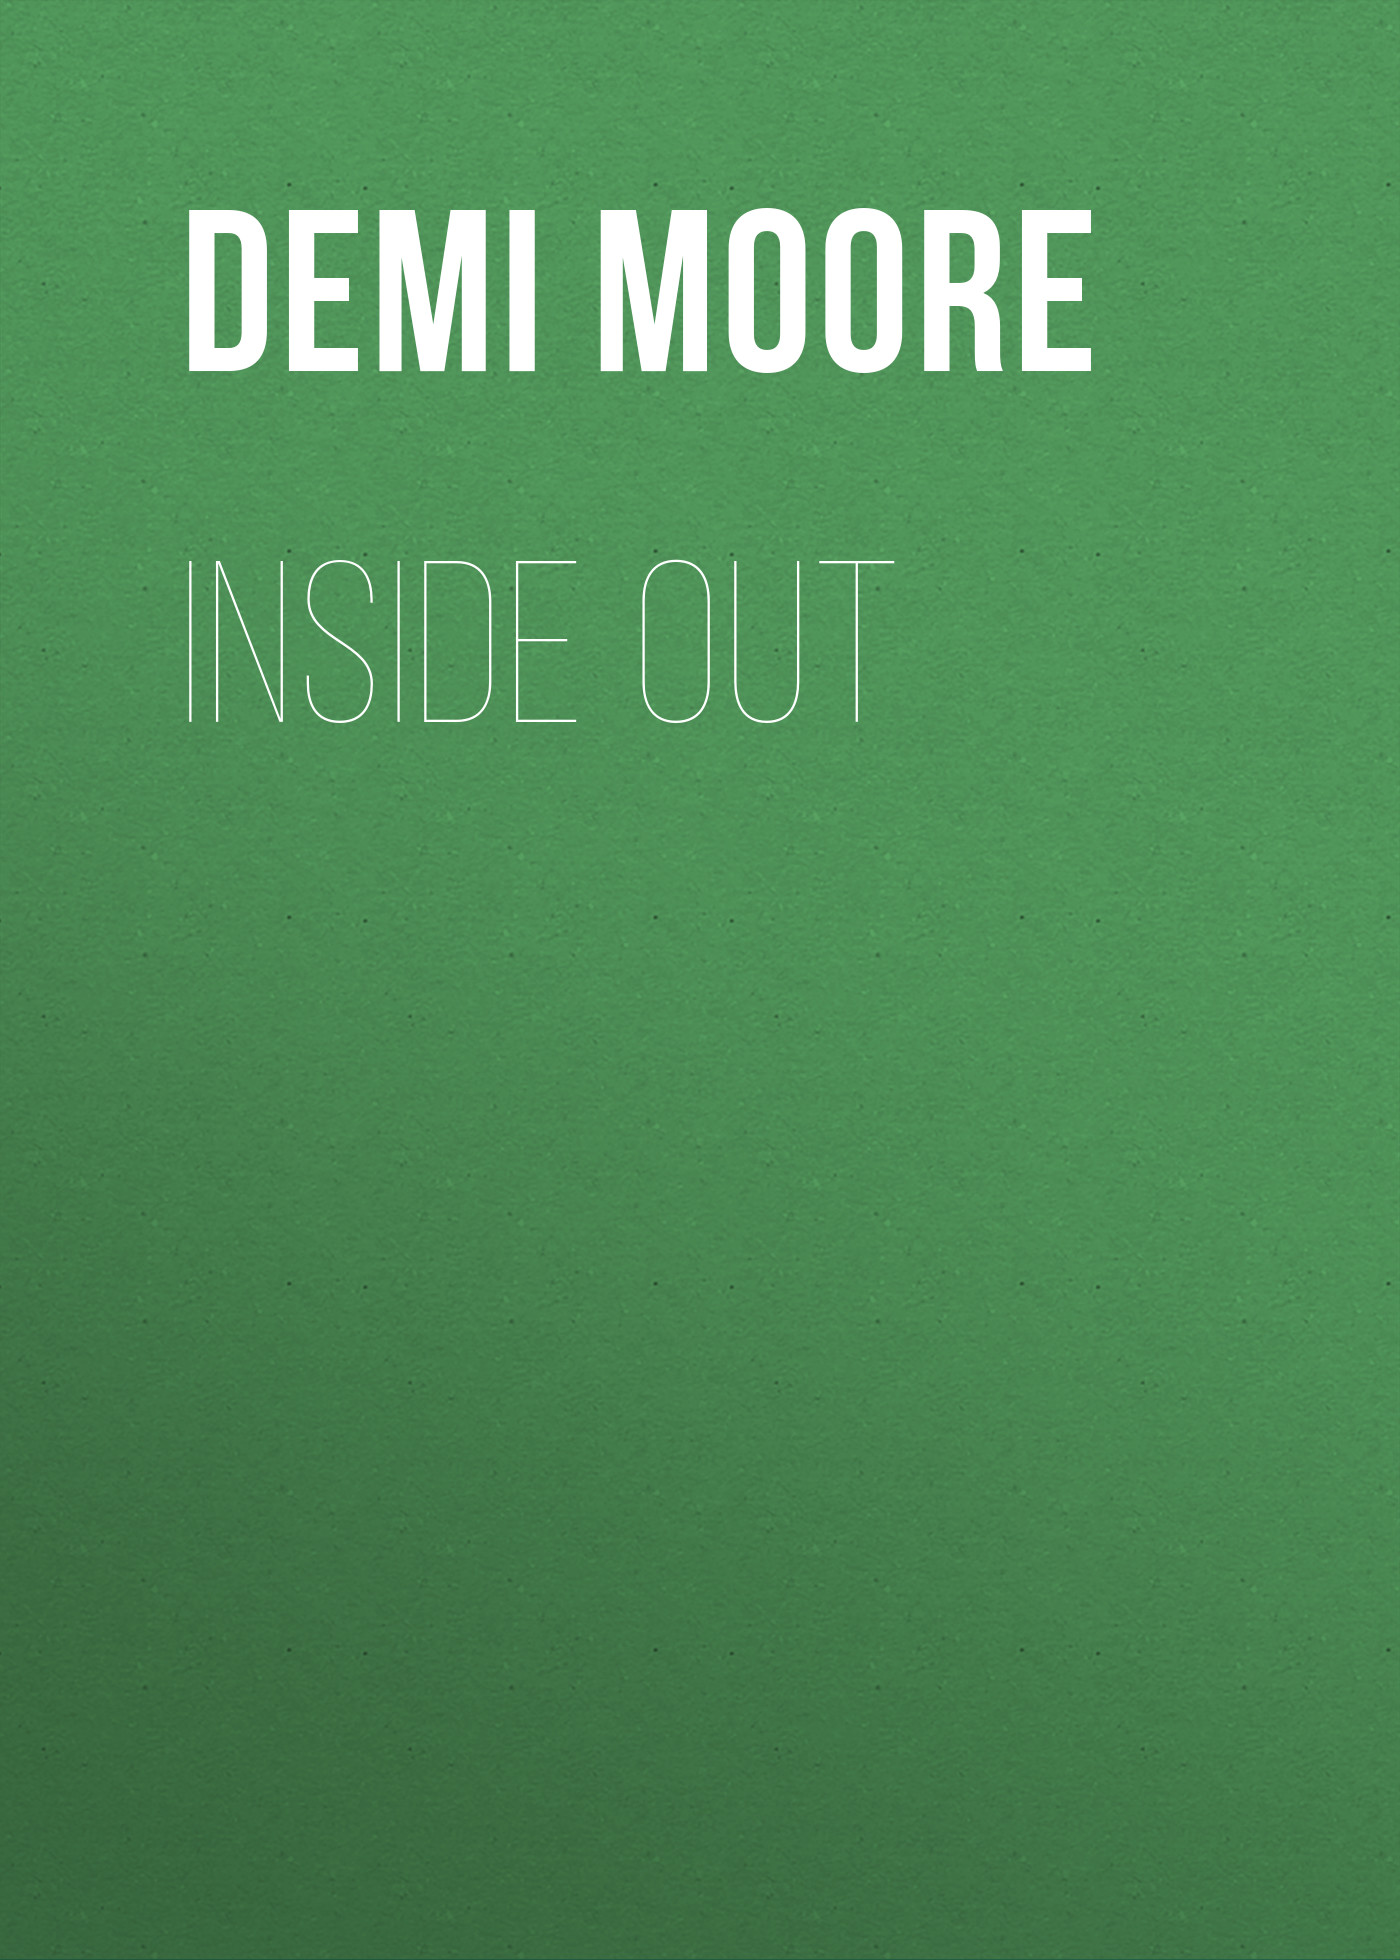 Demi Moore Inside Out inside out